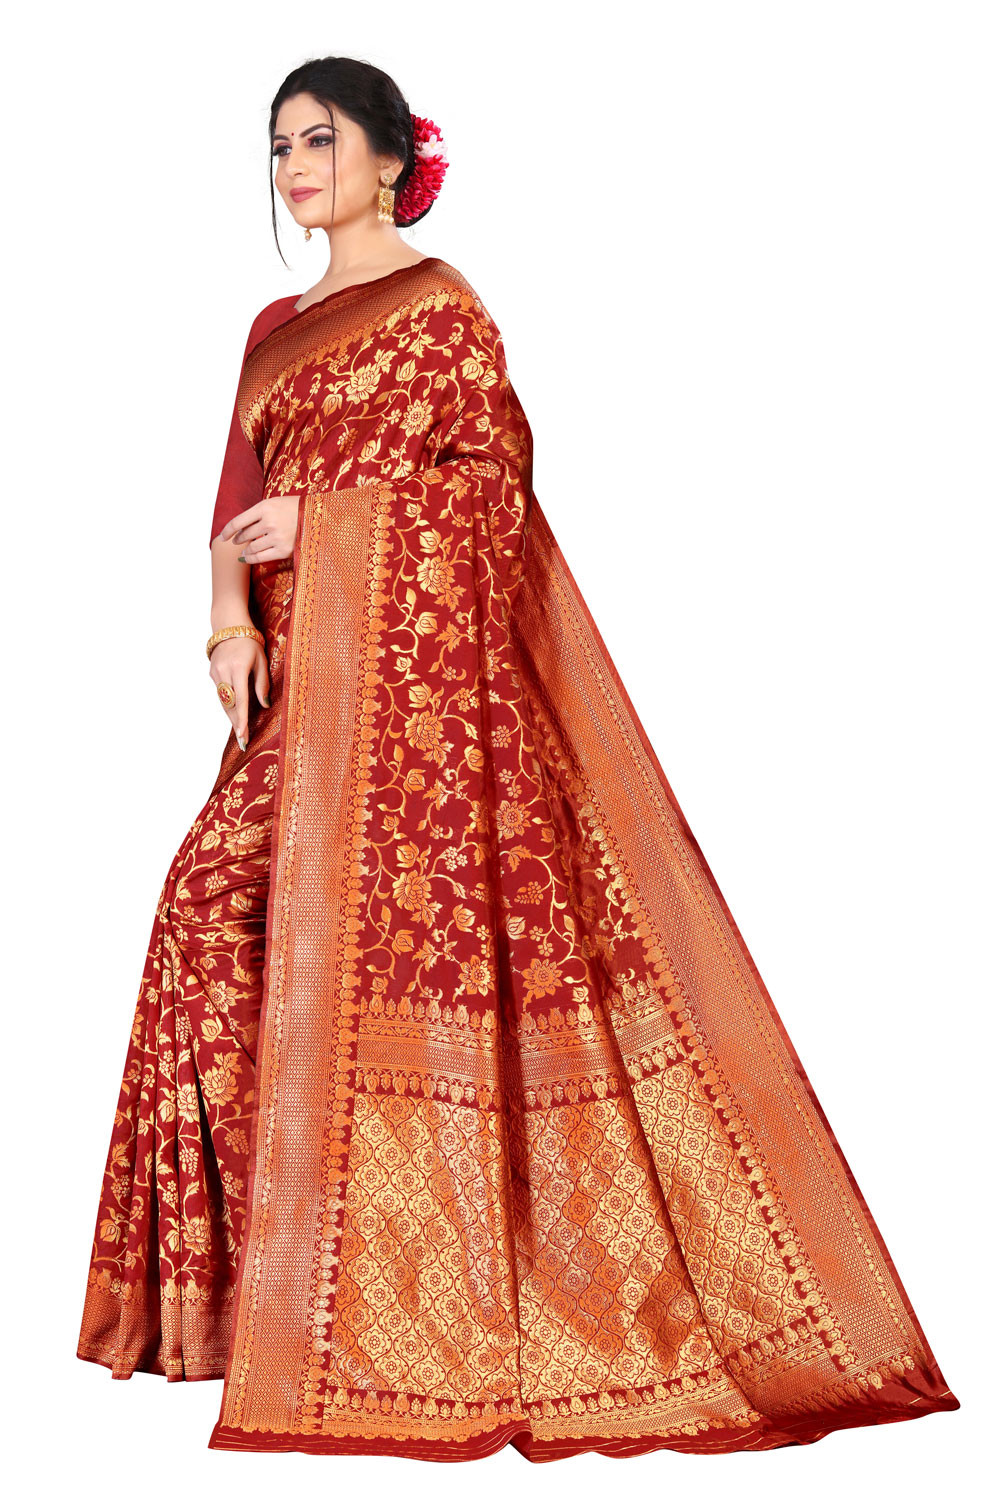 DD 186 Red  breathable organic Banarasi saree